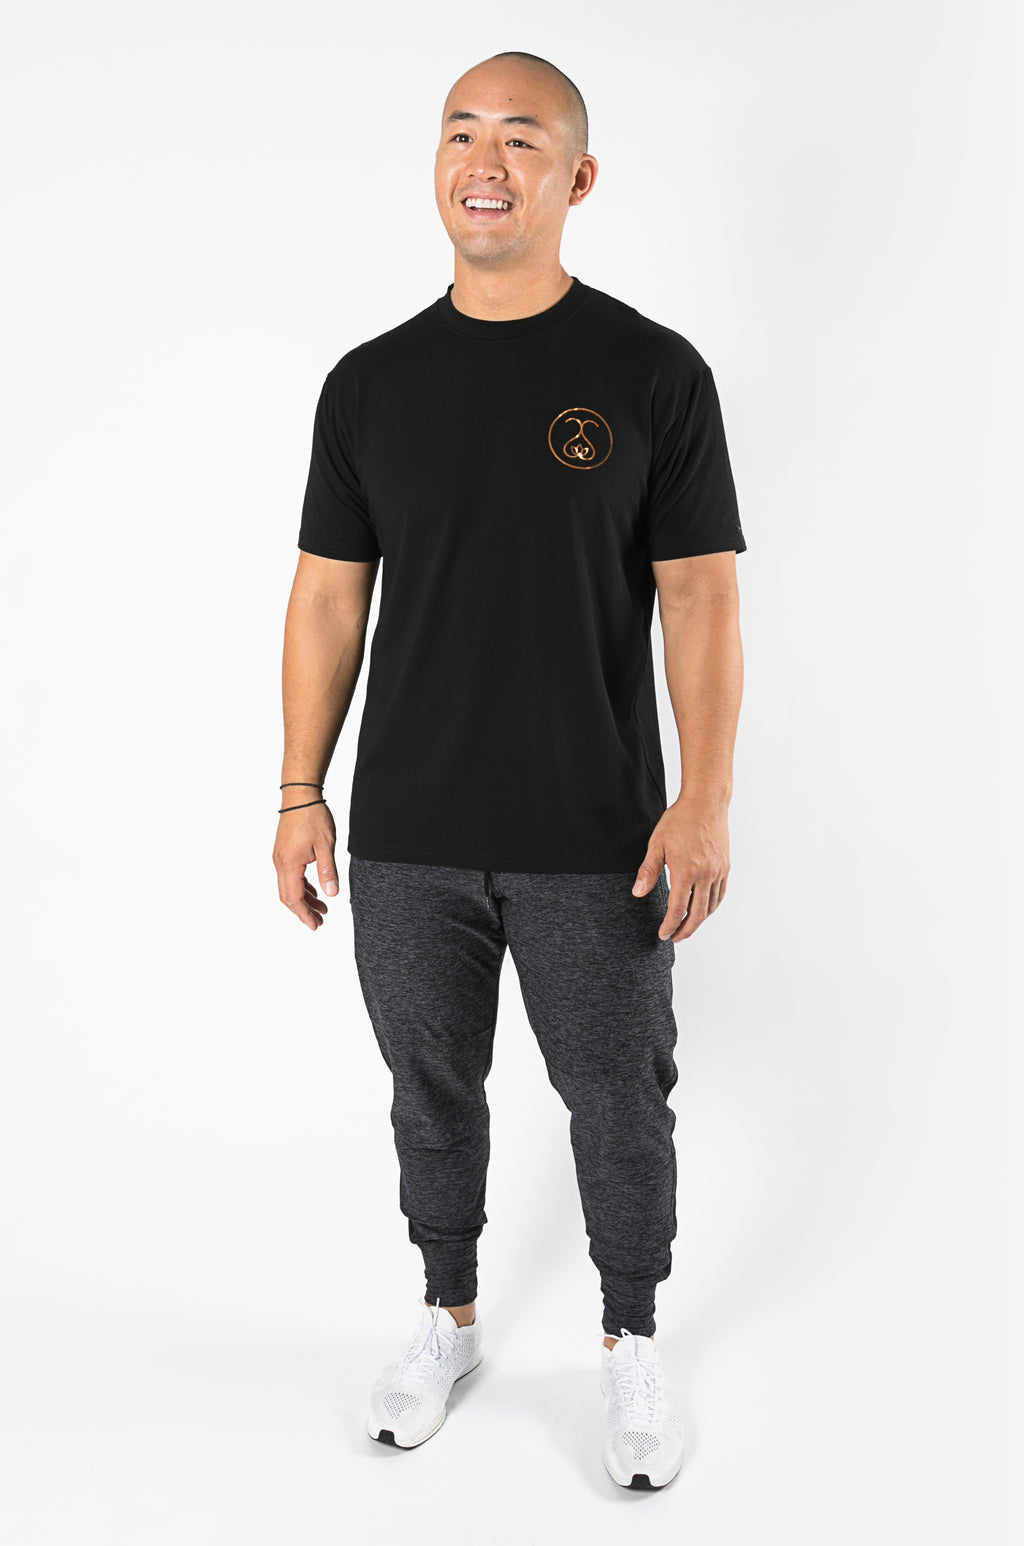 Sweat Society Men's Bamboo Tee